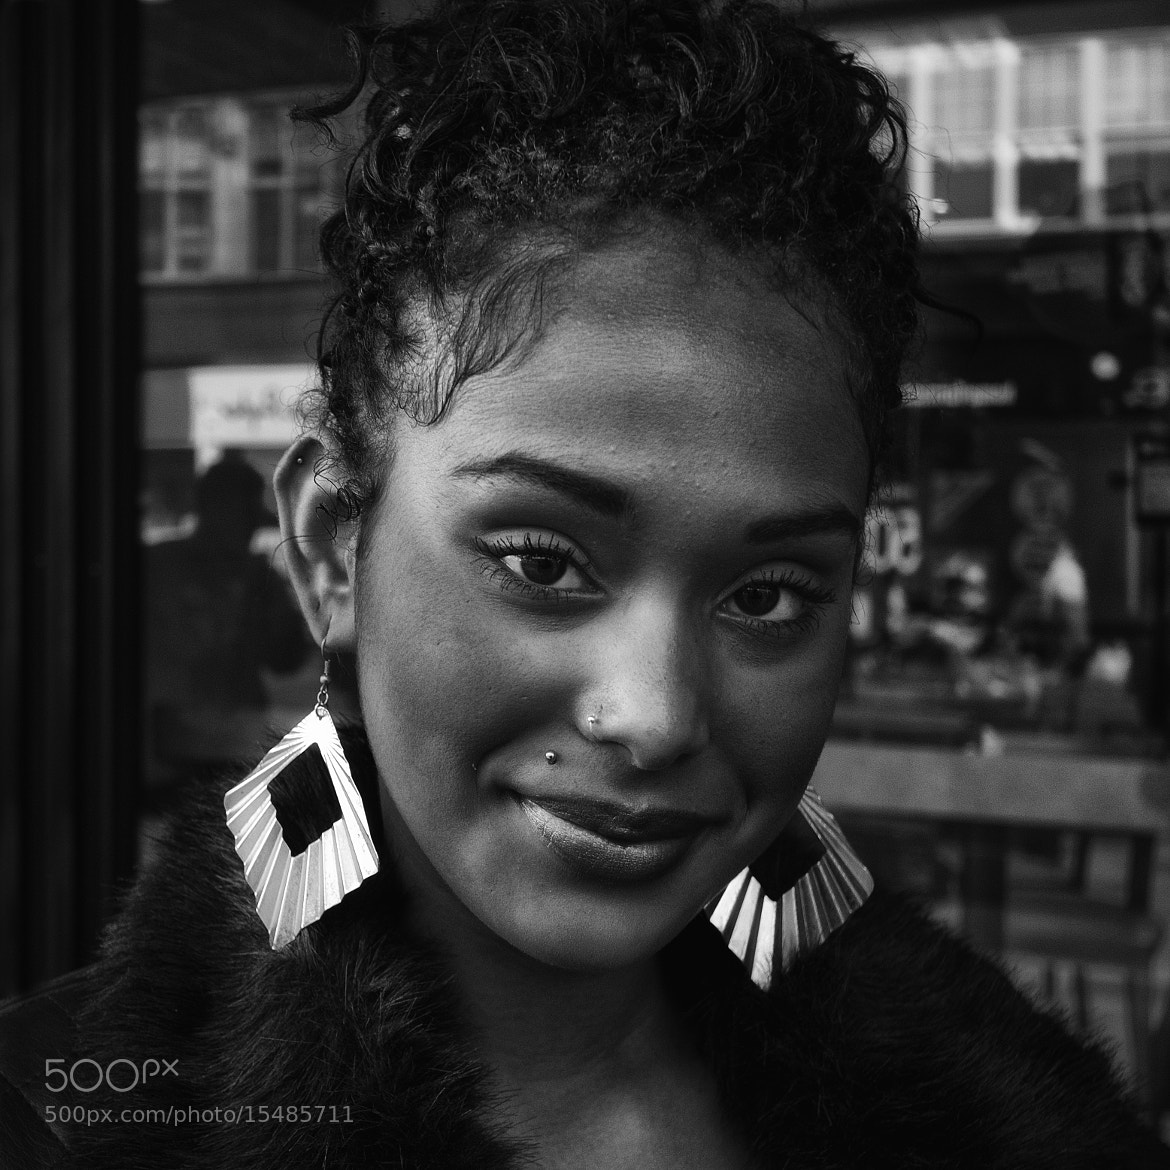 Photograph Street Portrait  by Maciej Kondratiuk on 500px